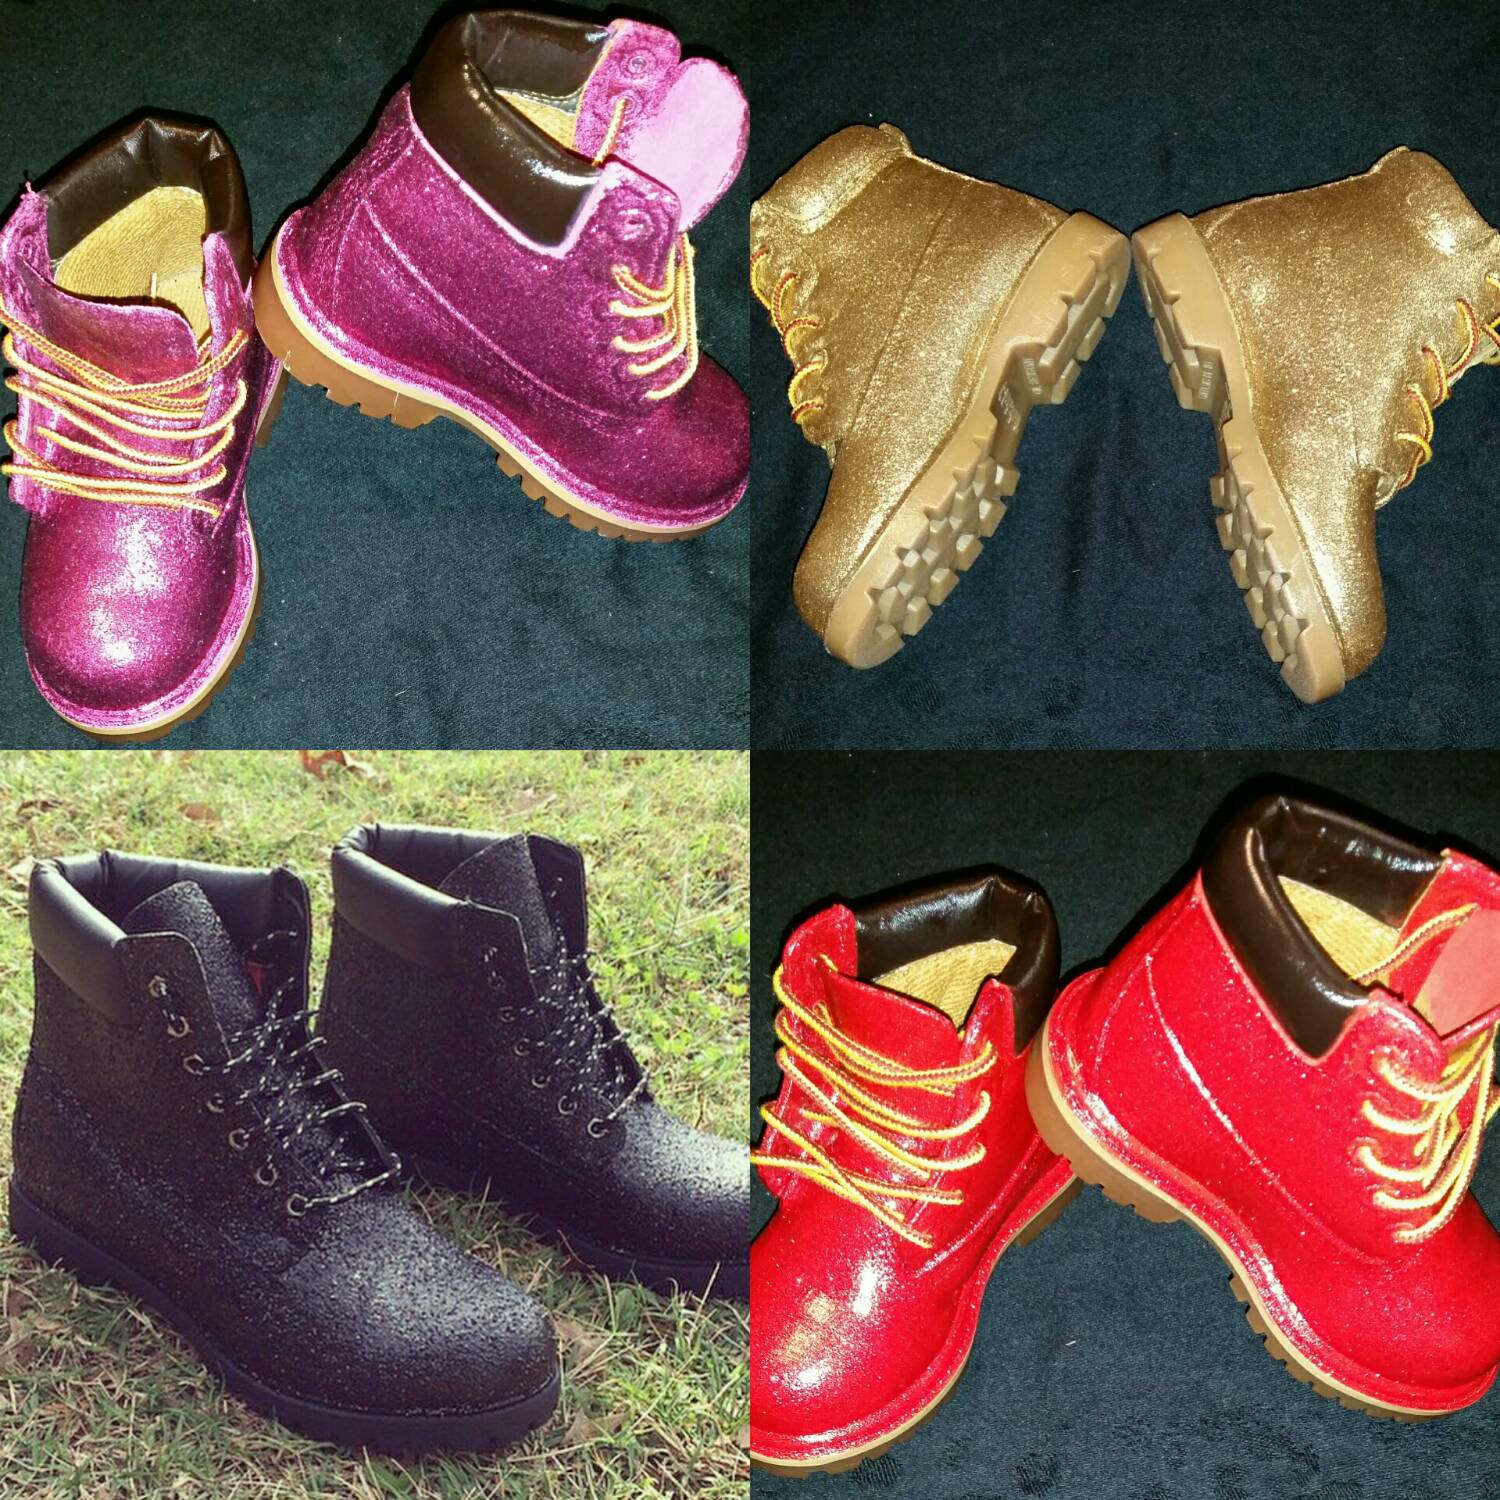 Colored Timberlands | Wheat Color Timberland Boots | Waterproof Timberlands